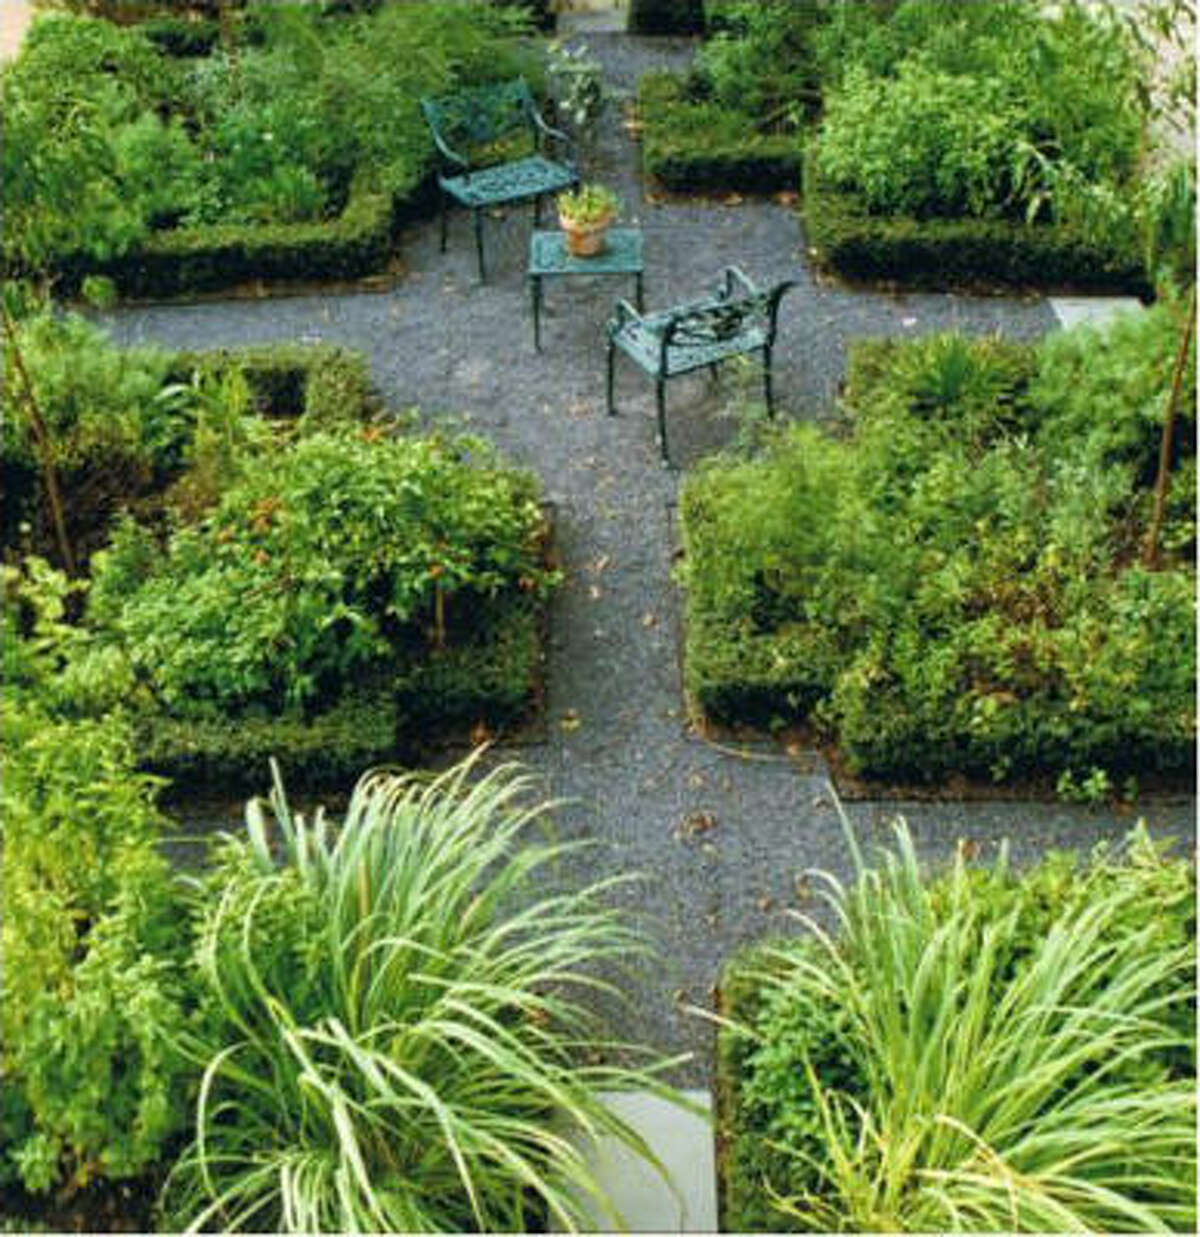 Black Star gravel paths through this herb garden mean less mowing, edging and water use. An expanded area at the path's intersection provides room for a couple of chairs that offer a resting spot while gardening